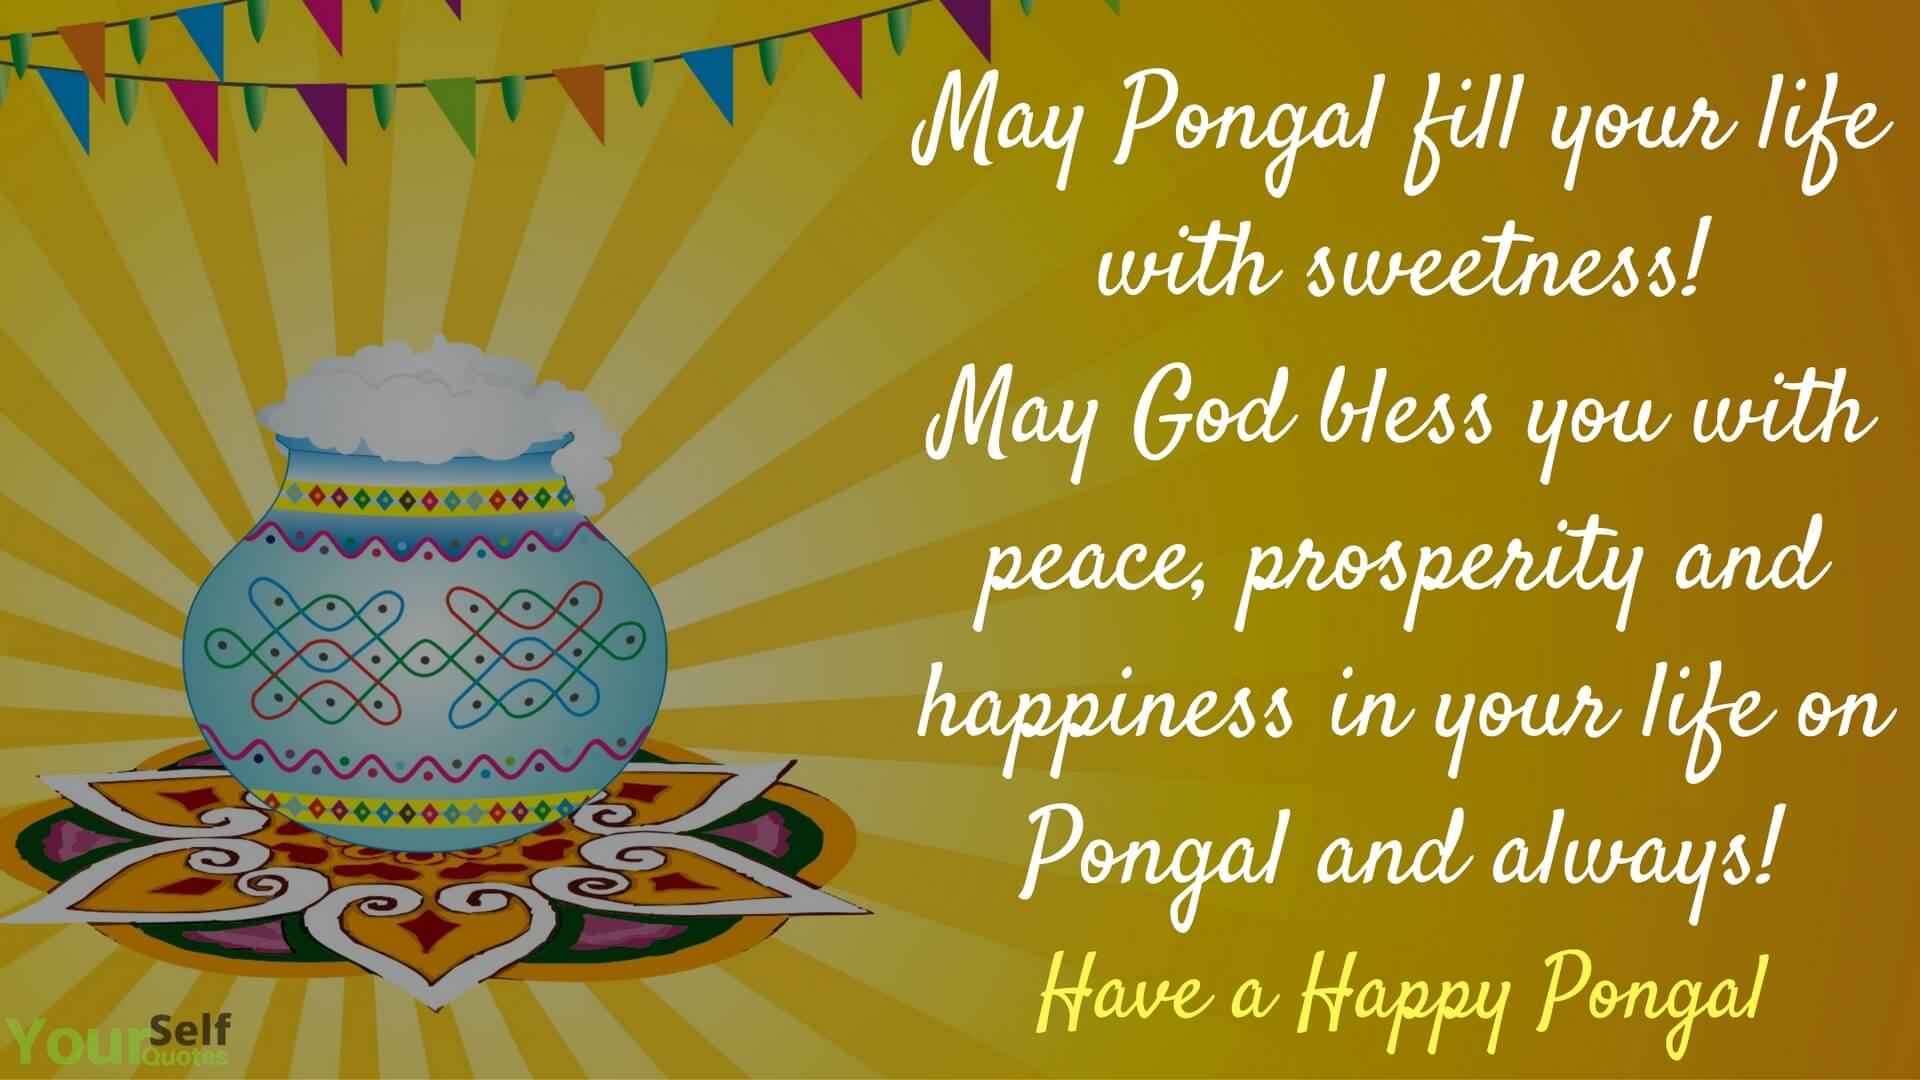 Pongal Day Pictures